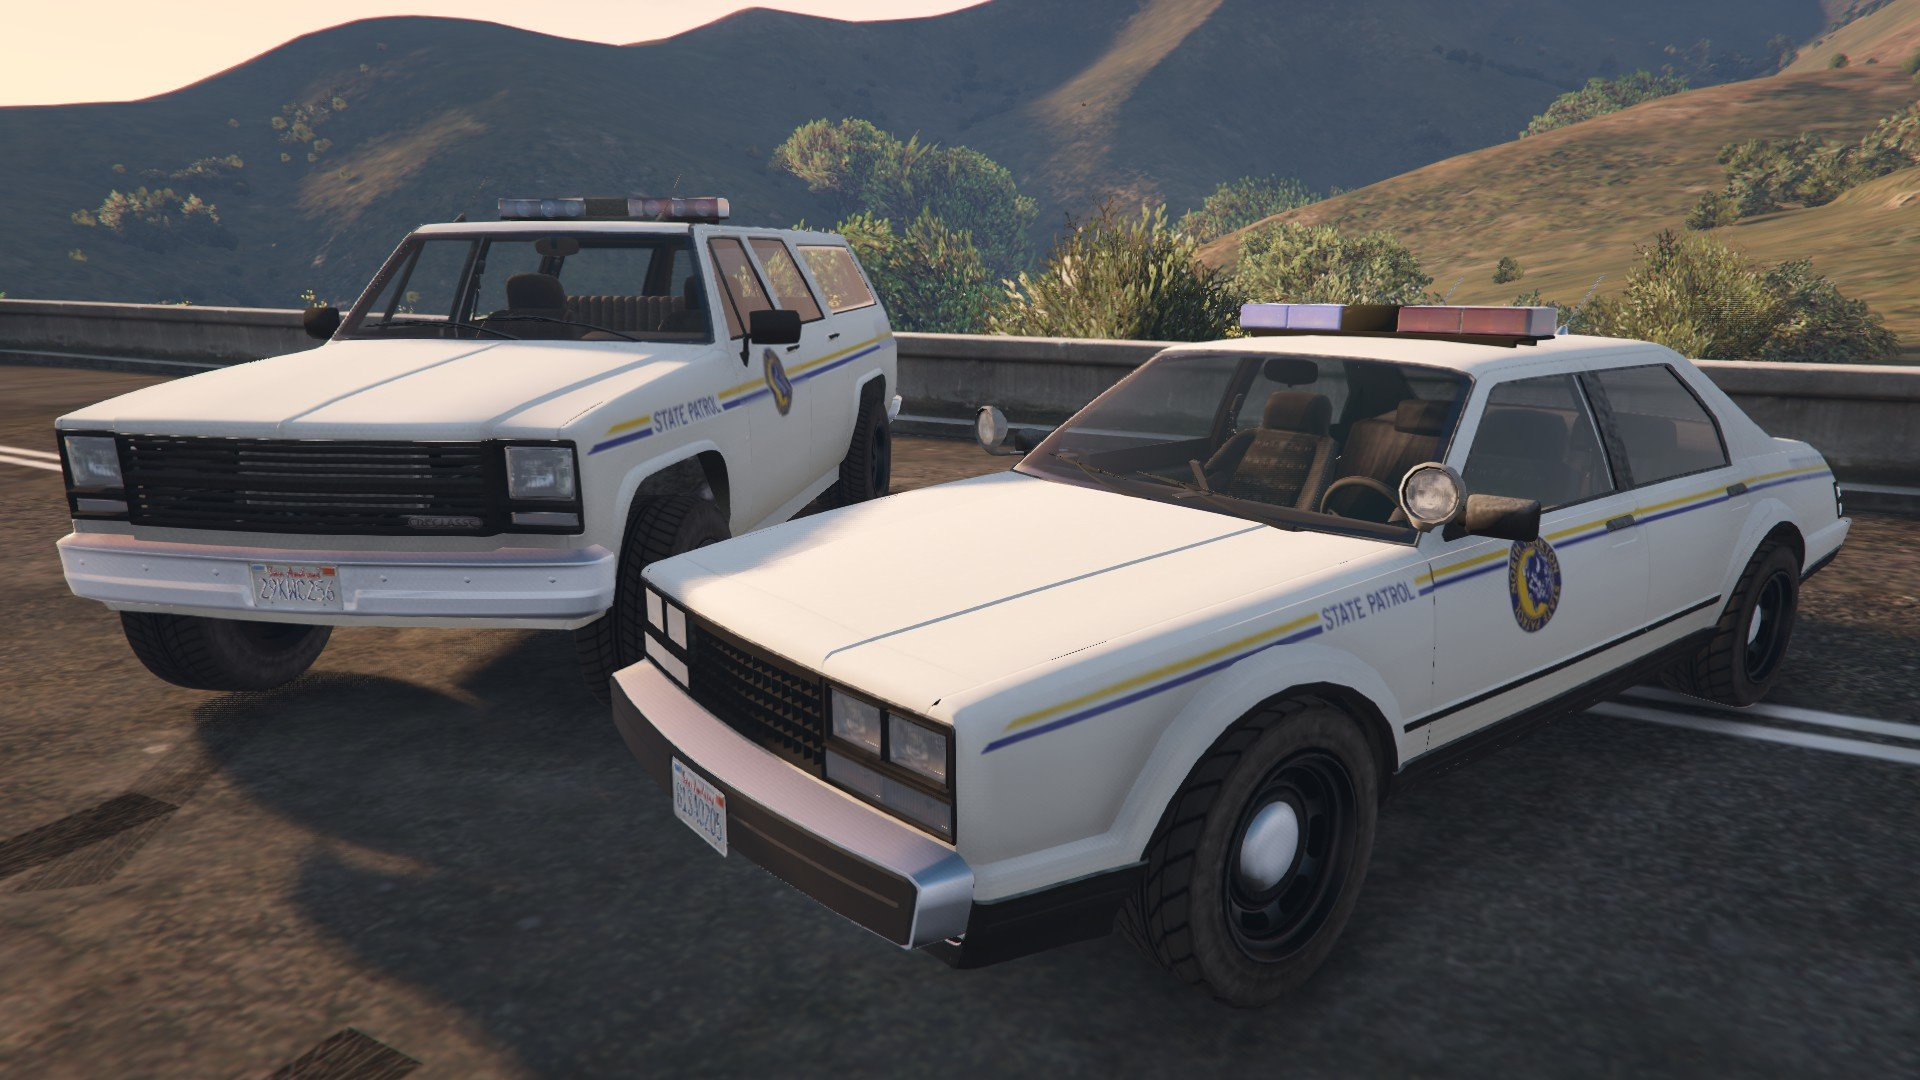 Yankton Police Cars Without Snow [Add-On / Replace] - GTA5